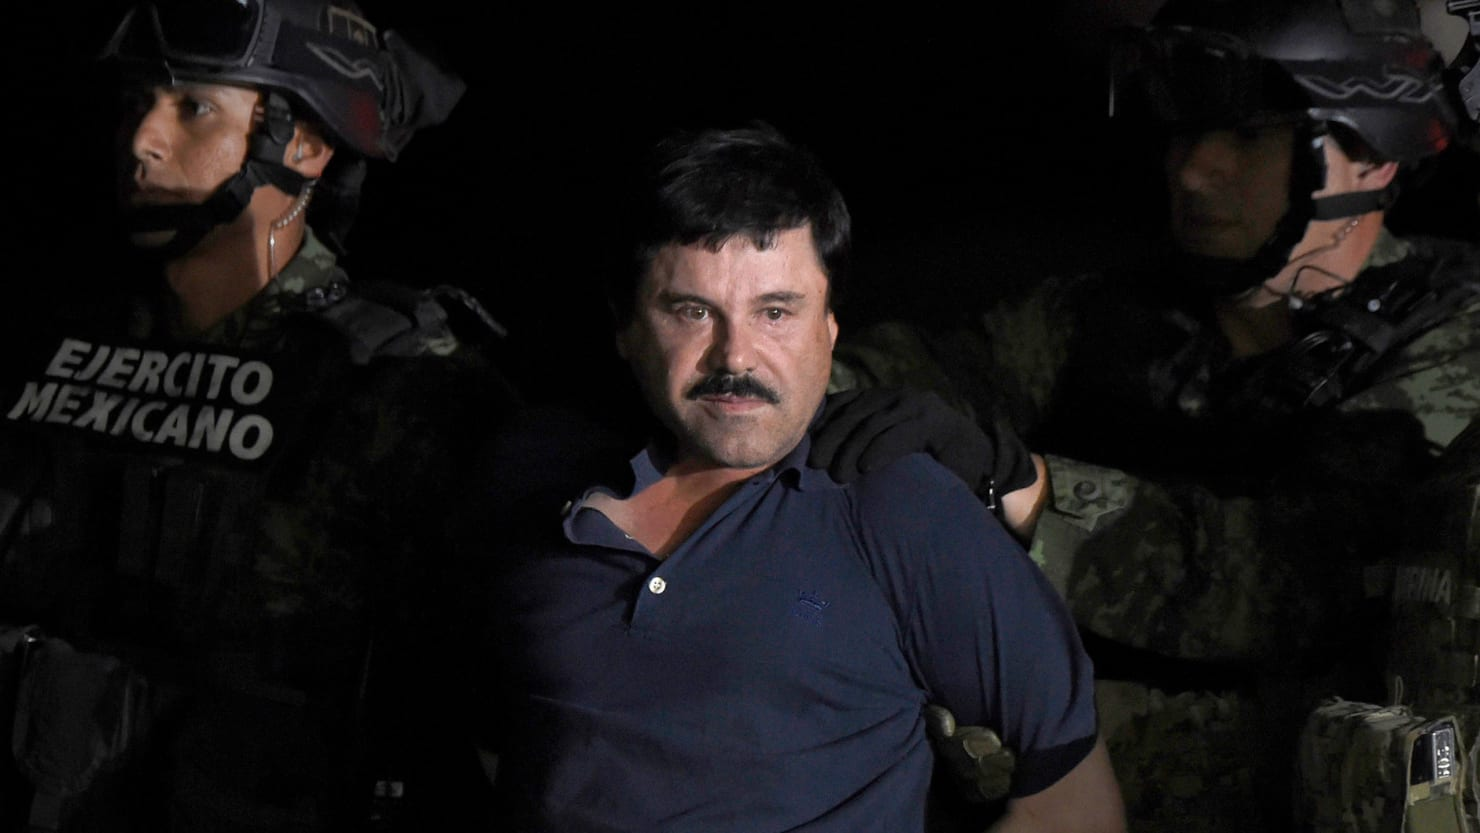 El Chapo trial: Mexican presidents accused of taking cartel bribes